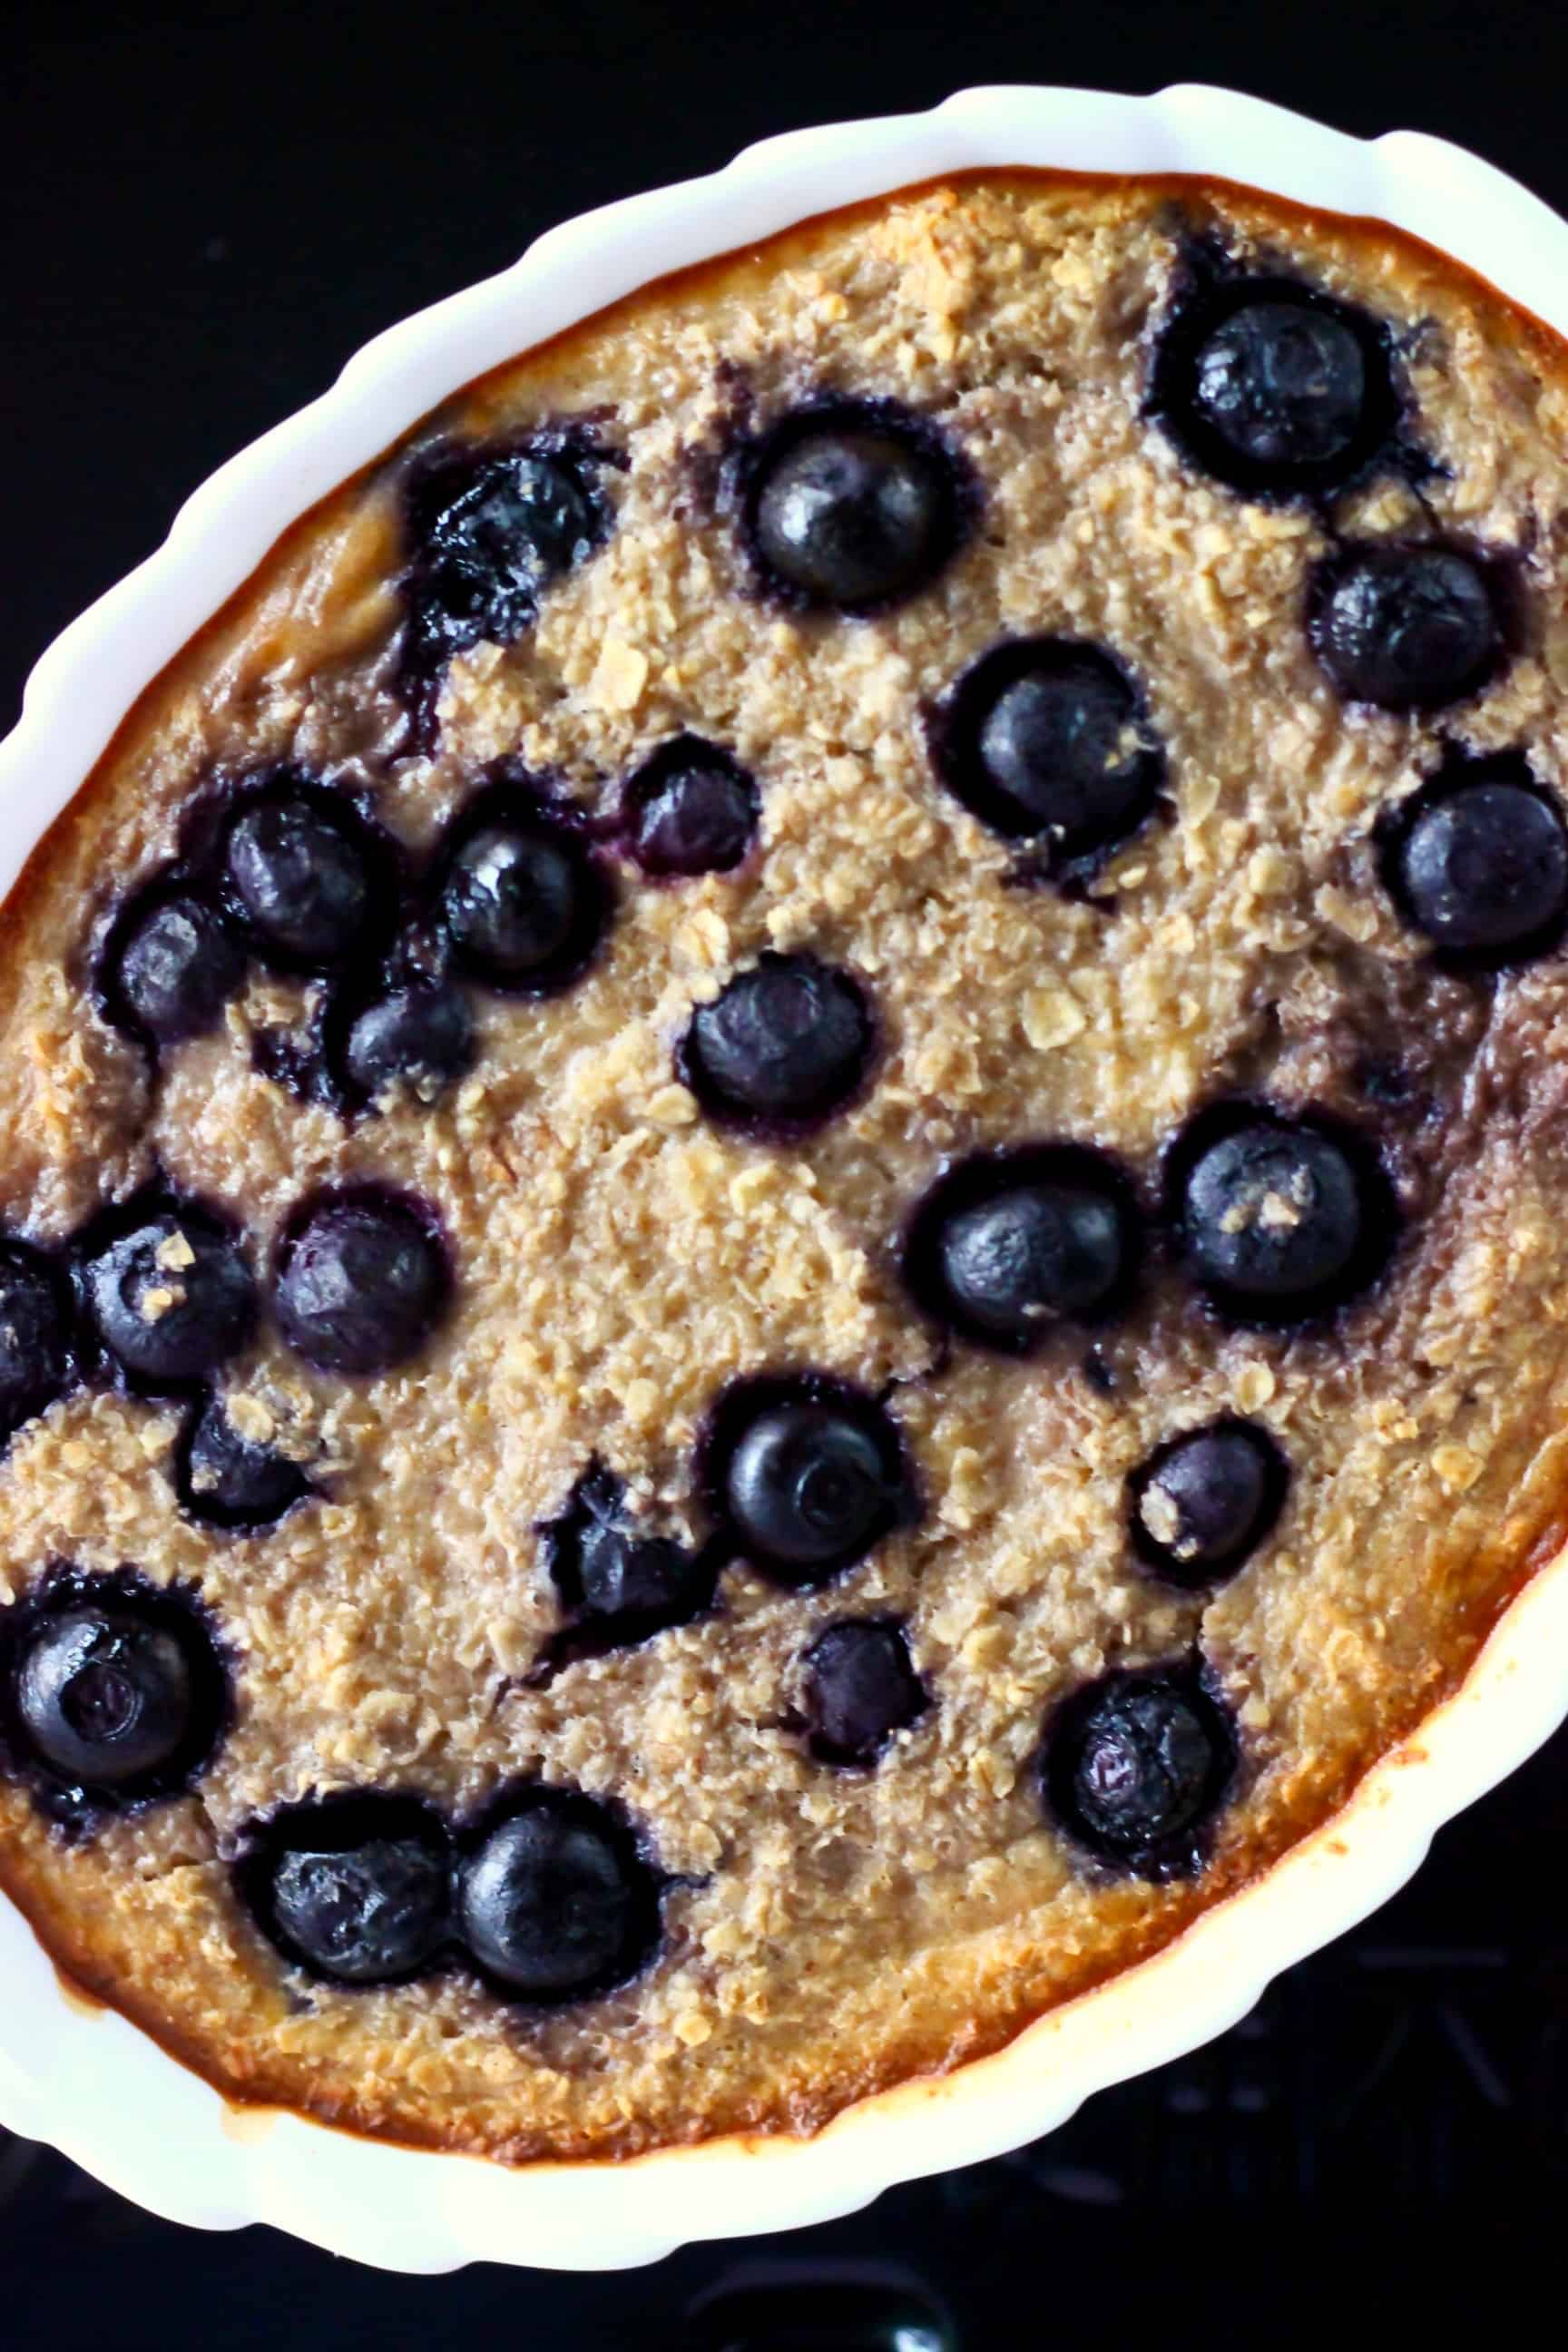 Blueberry banana baked oatmeal in a white oval baking dish against a black background